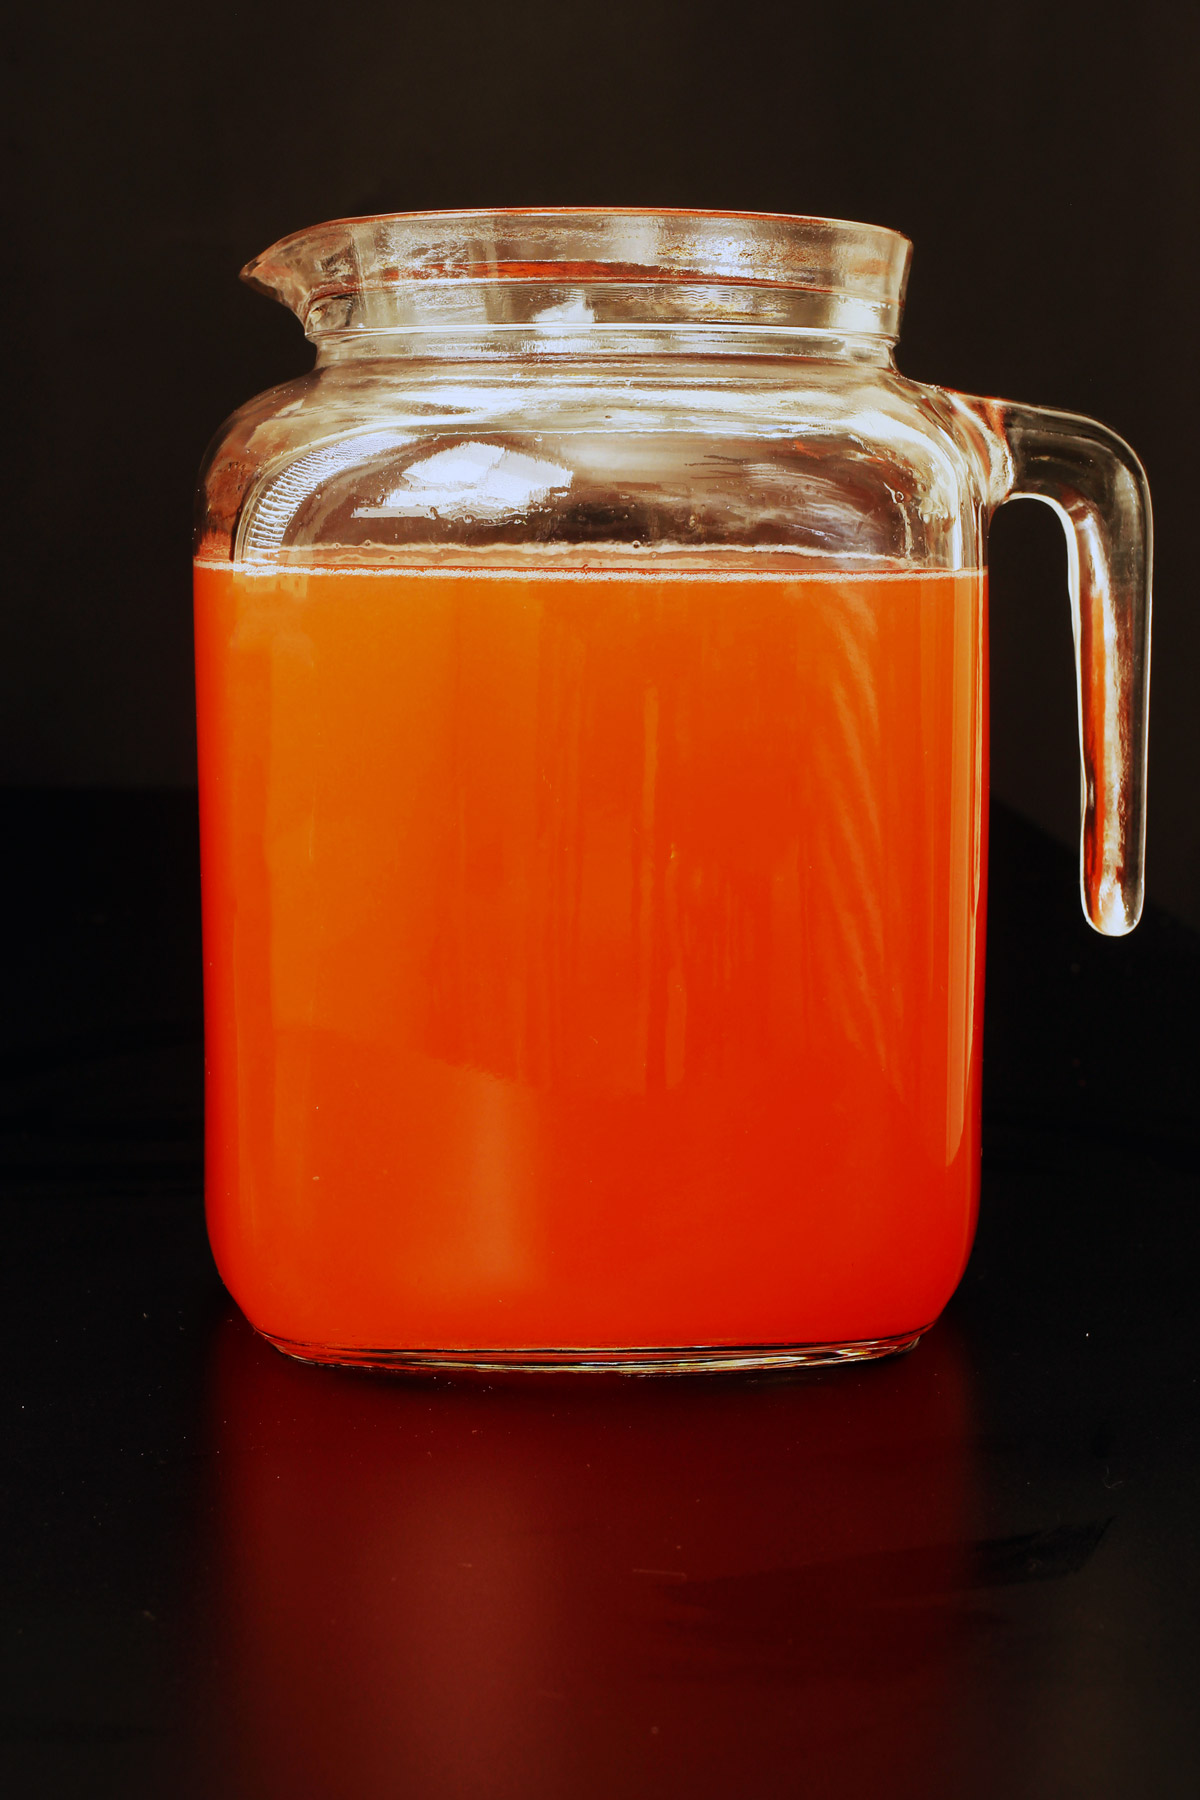 water added to the pitcher